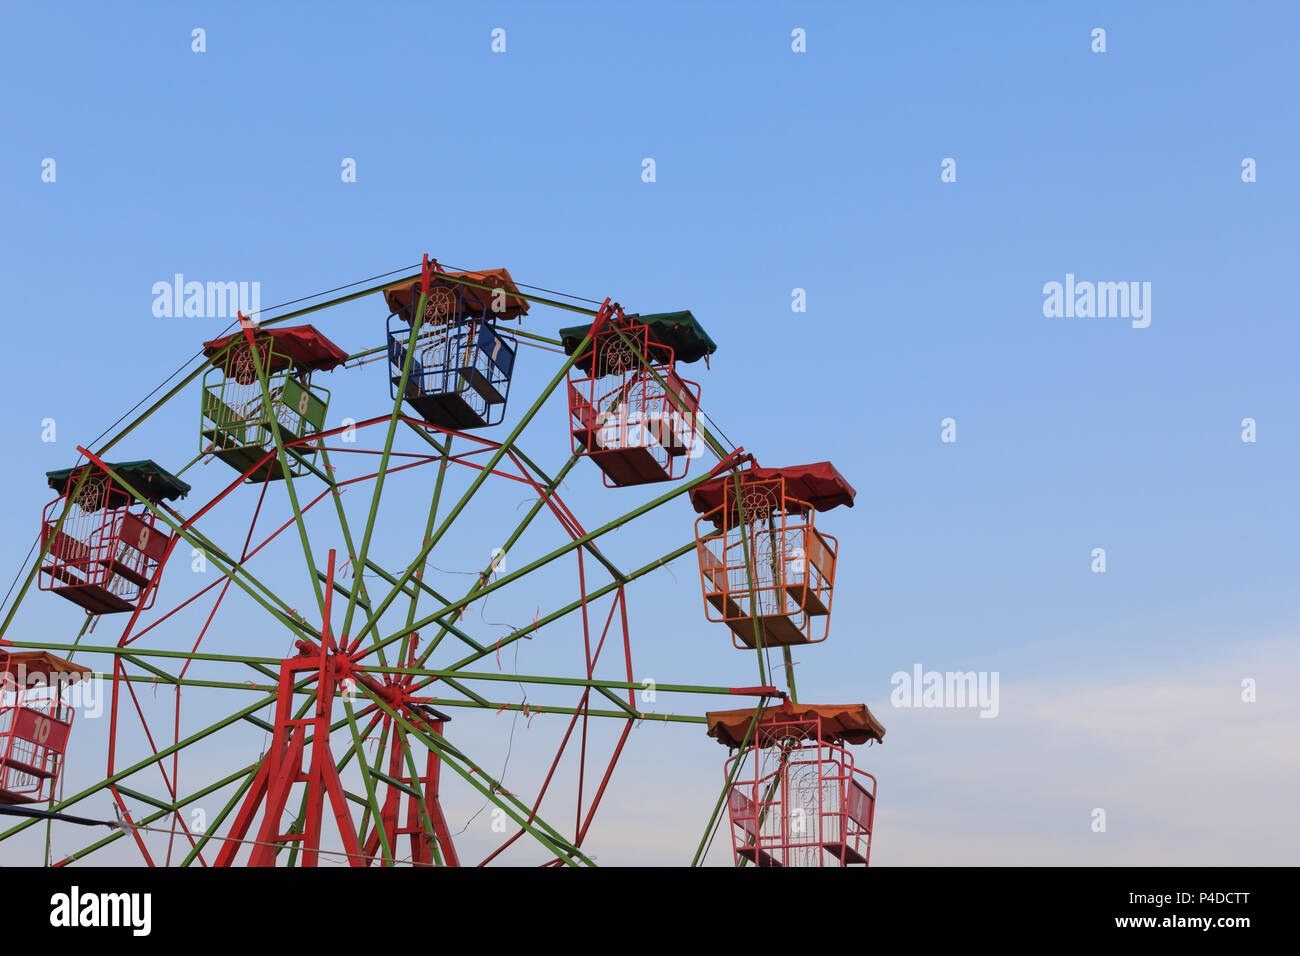 Silhouette Isolated On Blue Sky Stock Photos Ferris Wiring Diagram Vintage Background At Carnival Park Image